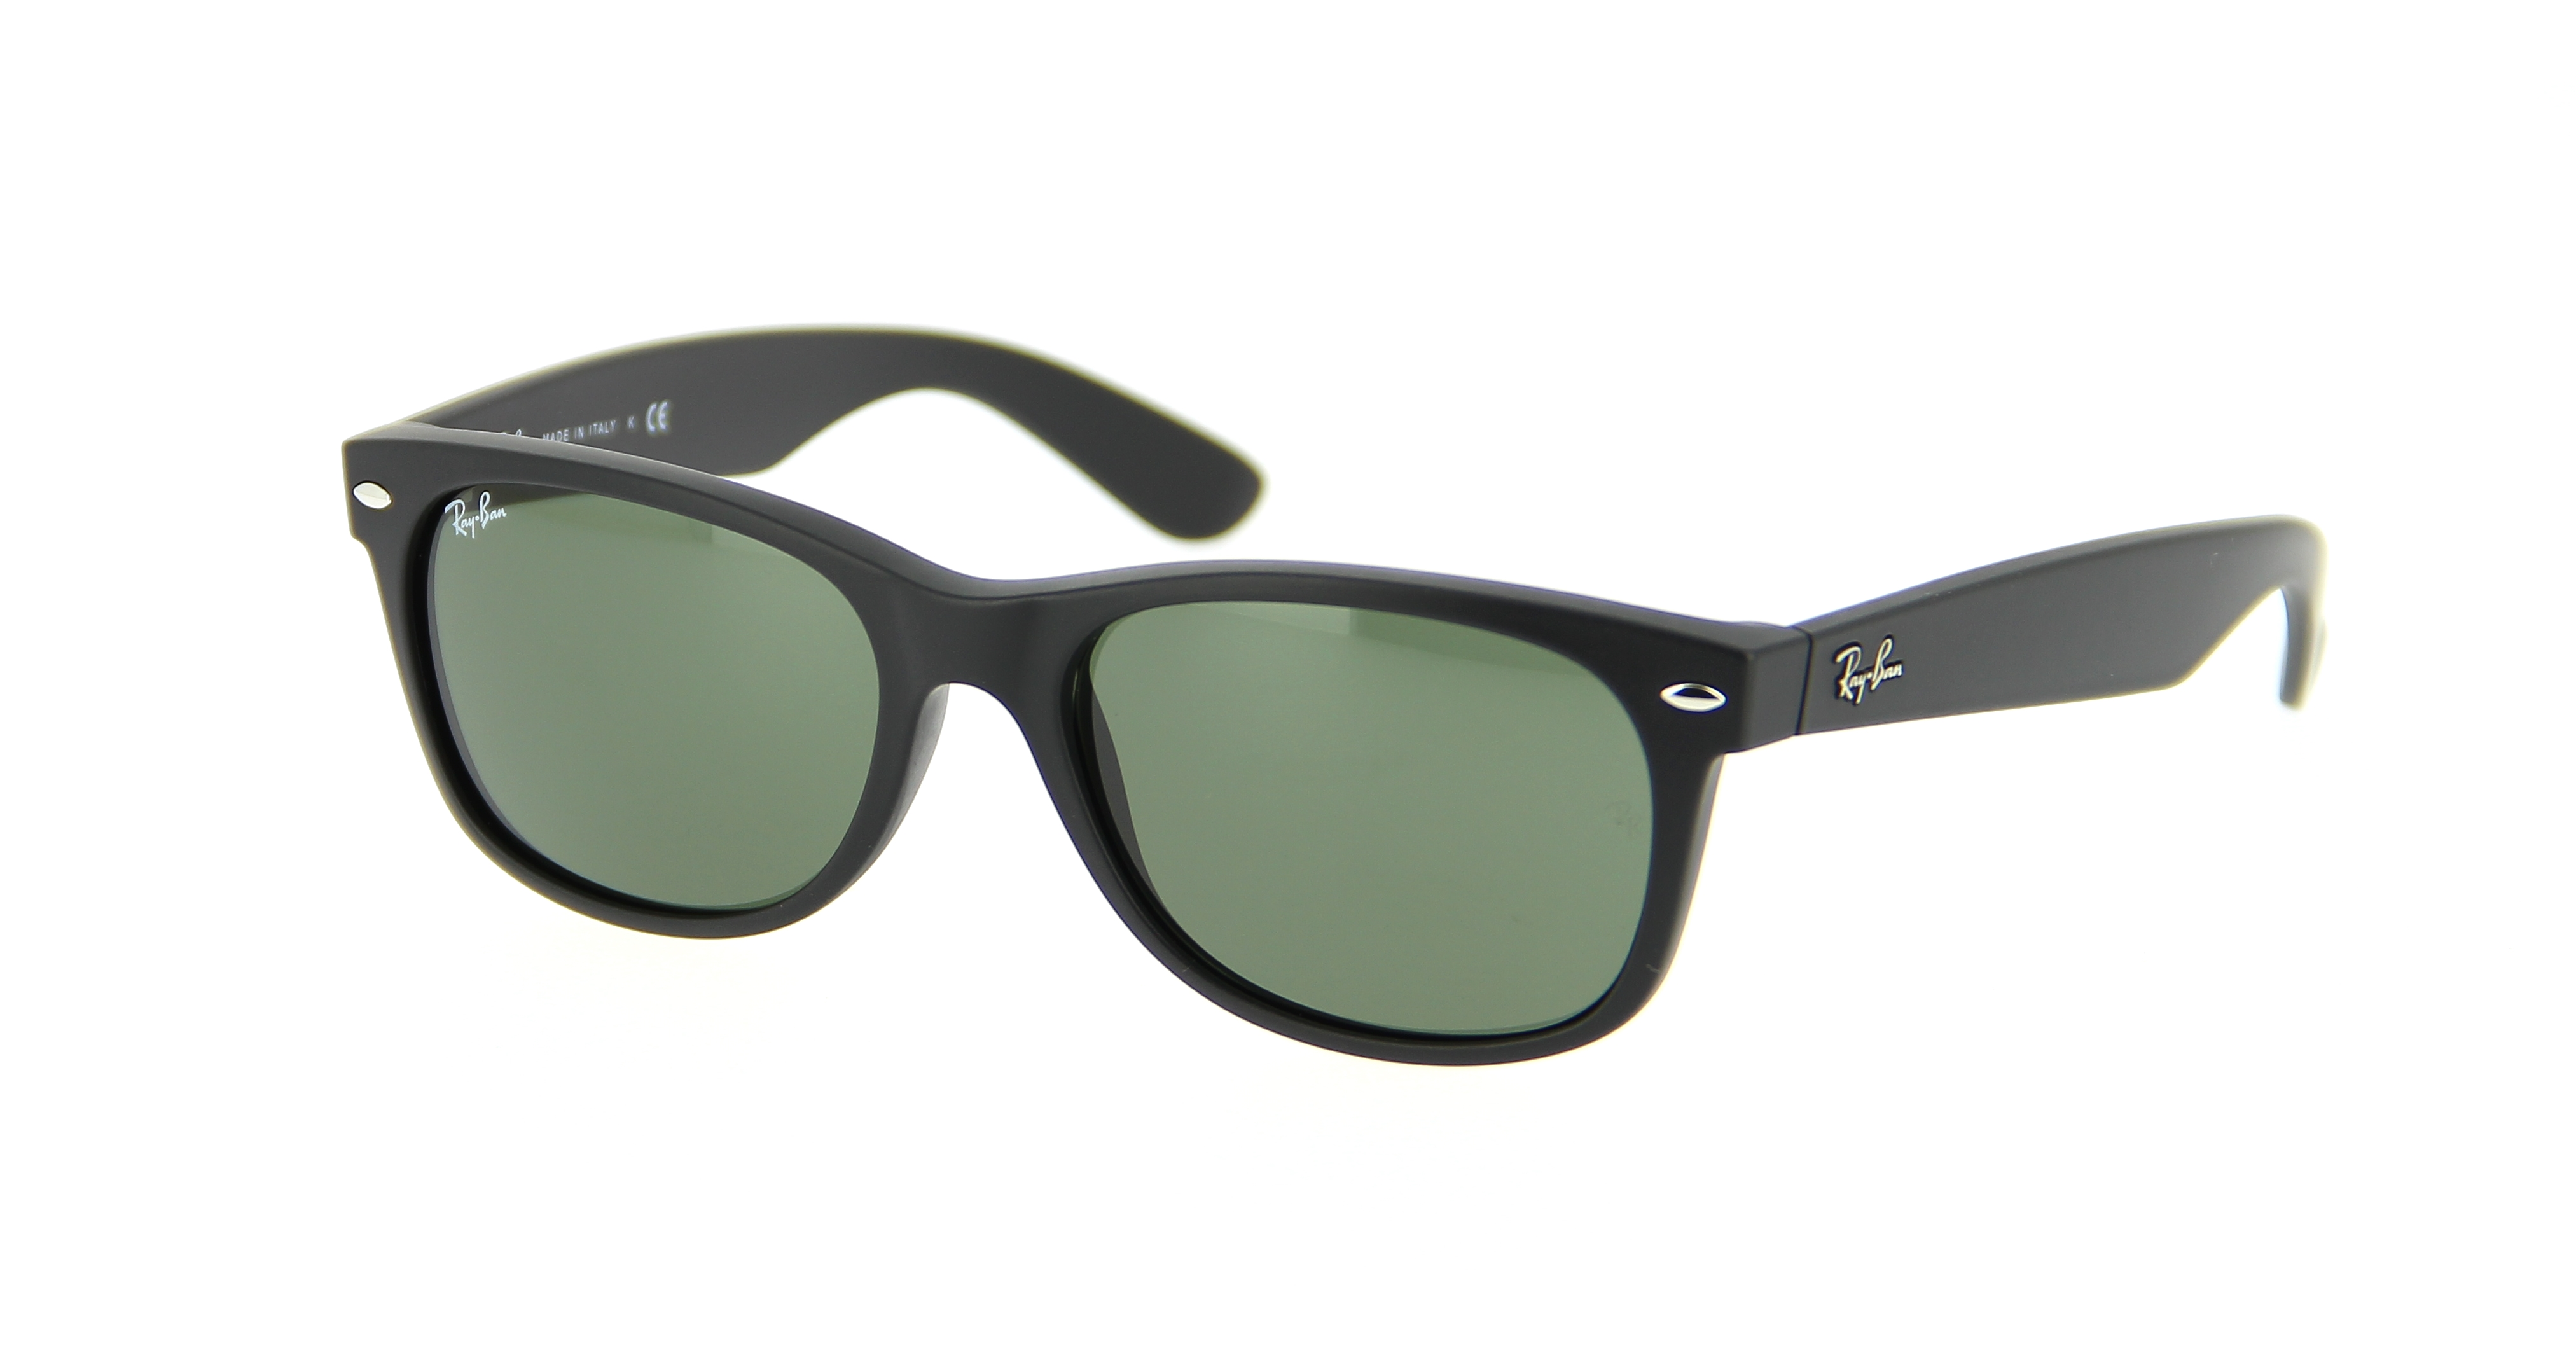 aa42fa93d73 Ray Ban 2132 55mm Replacement Lenses « Heritage Malta